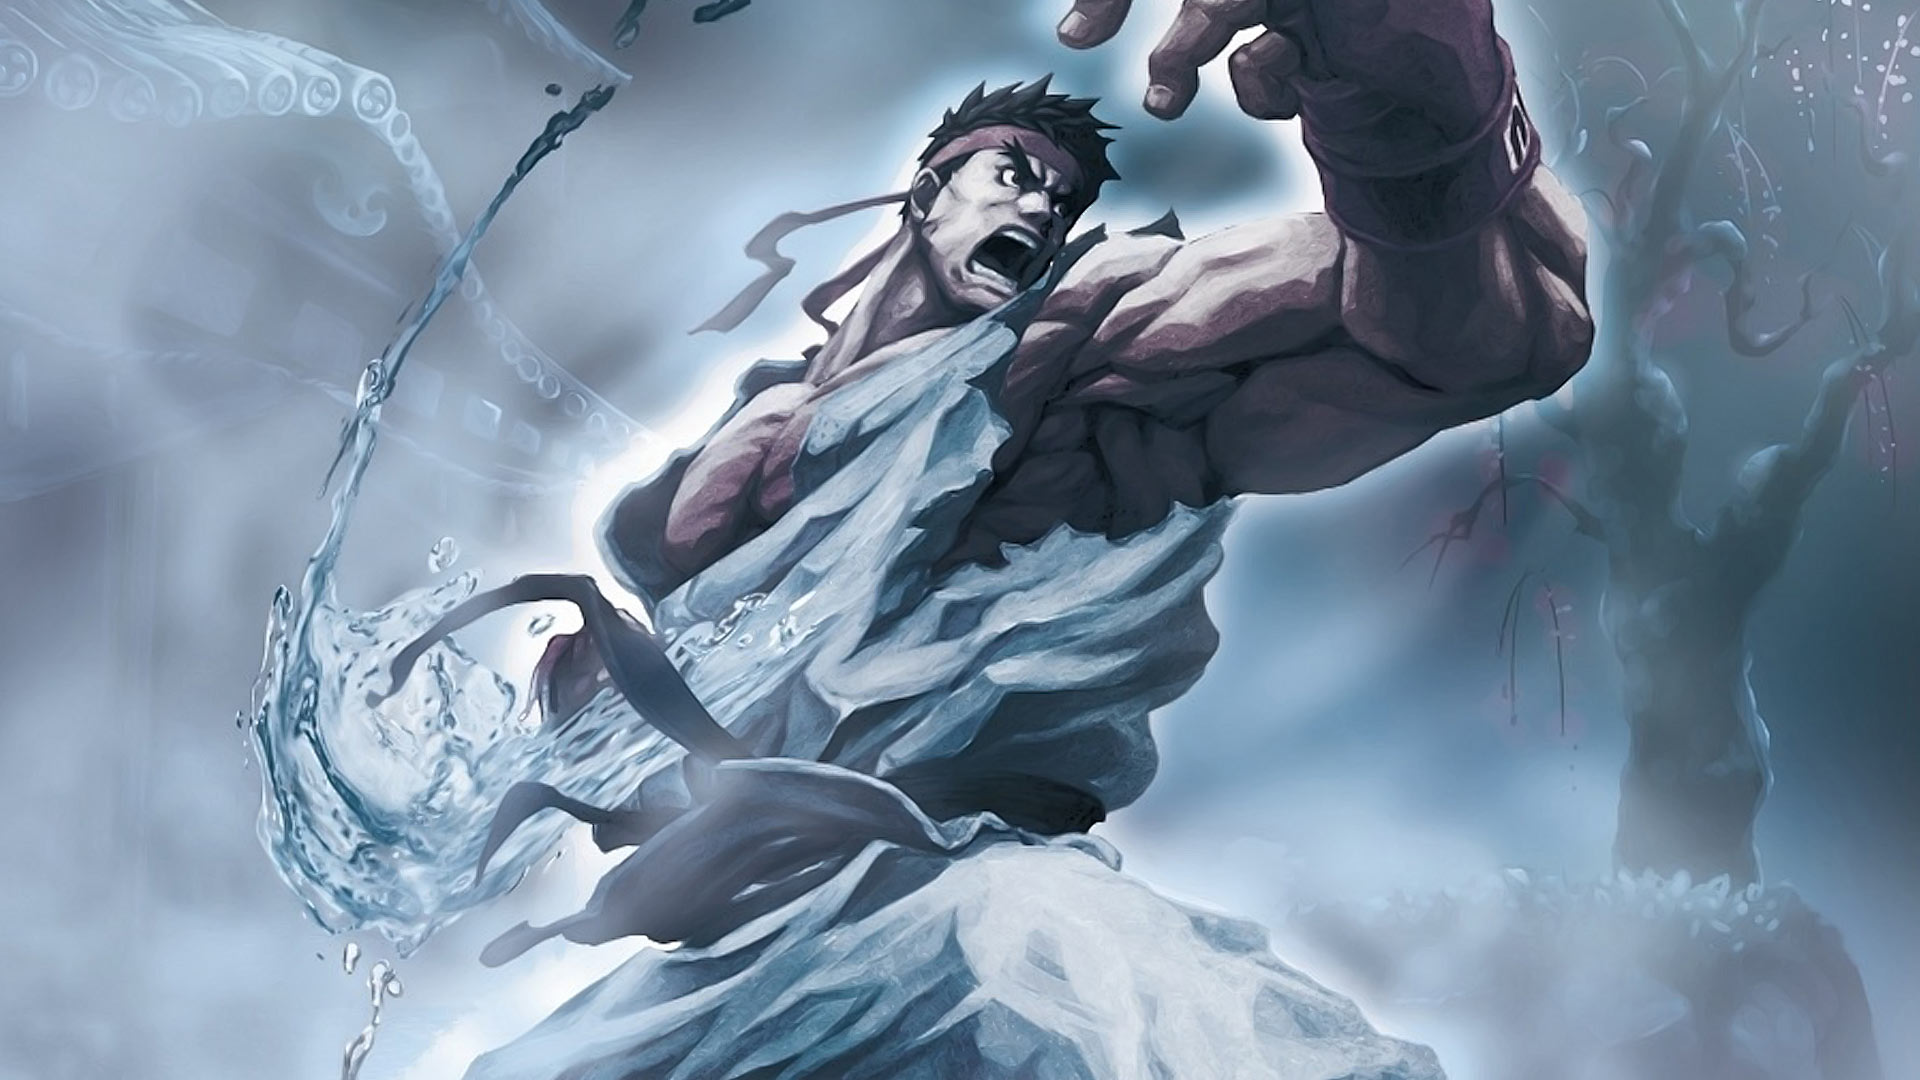 Street Fighter - Ryu - Wallpaper Full HD - 1920x1080